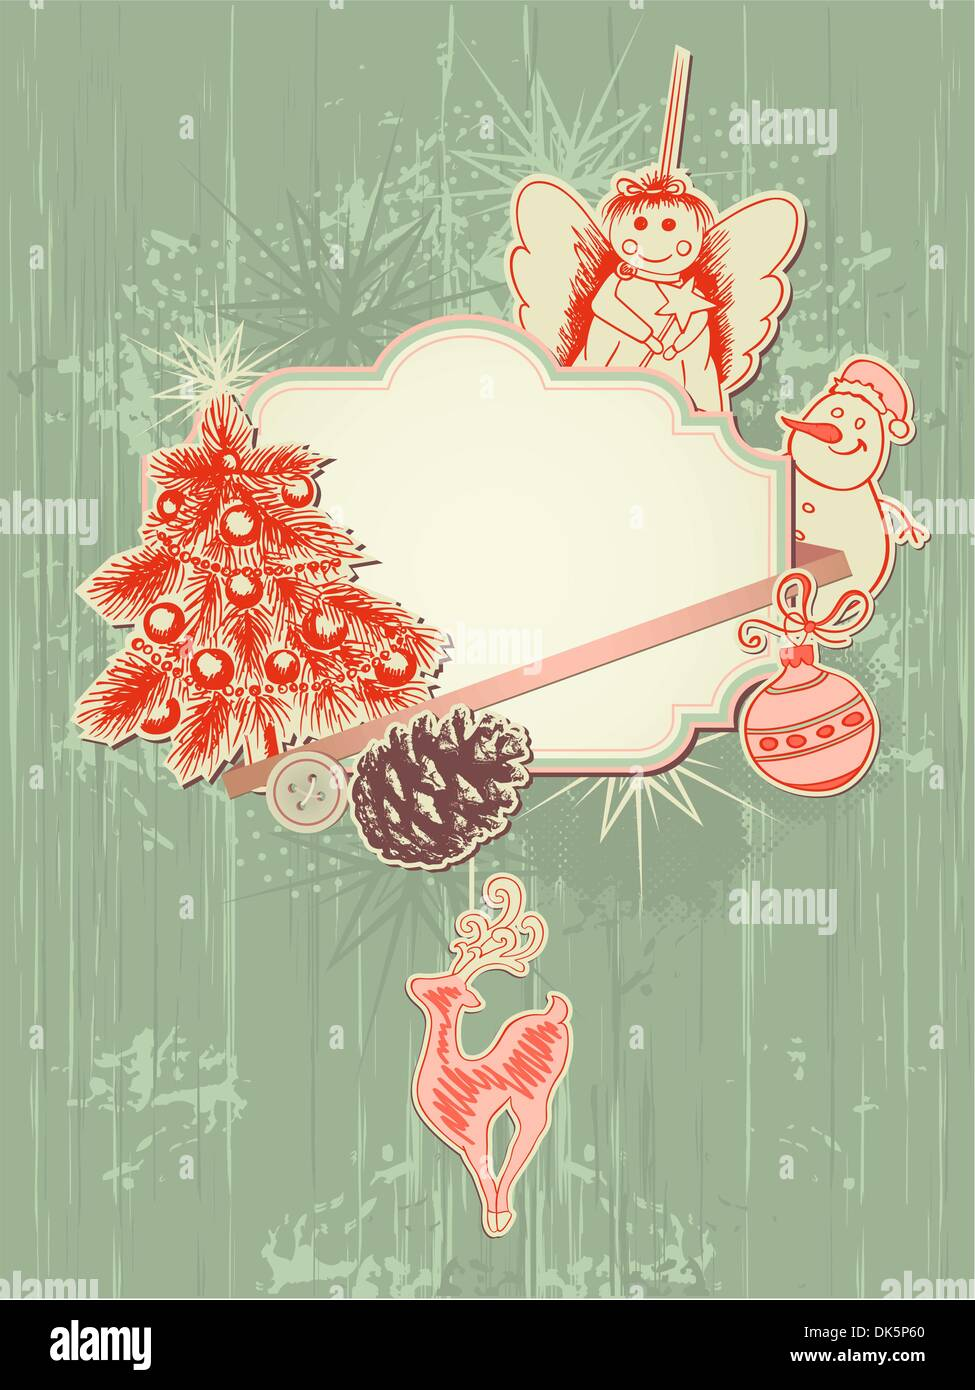 vector scrap booking kit for Christmas - Stock Image